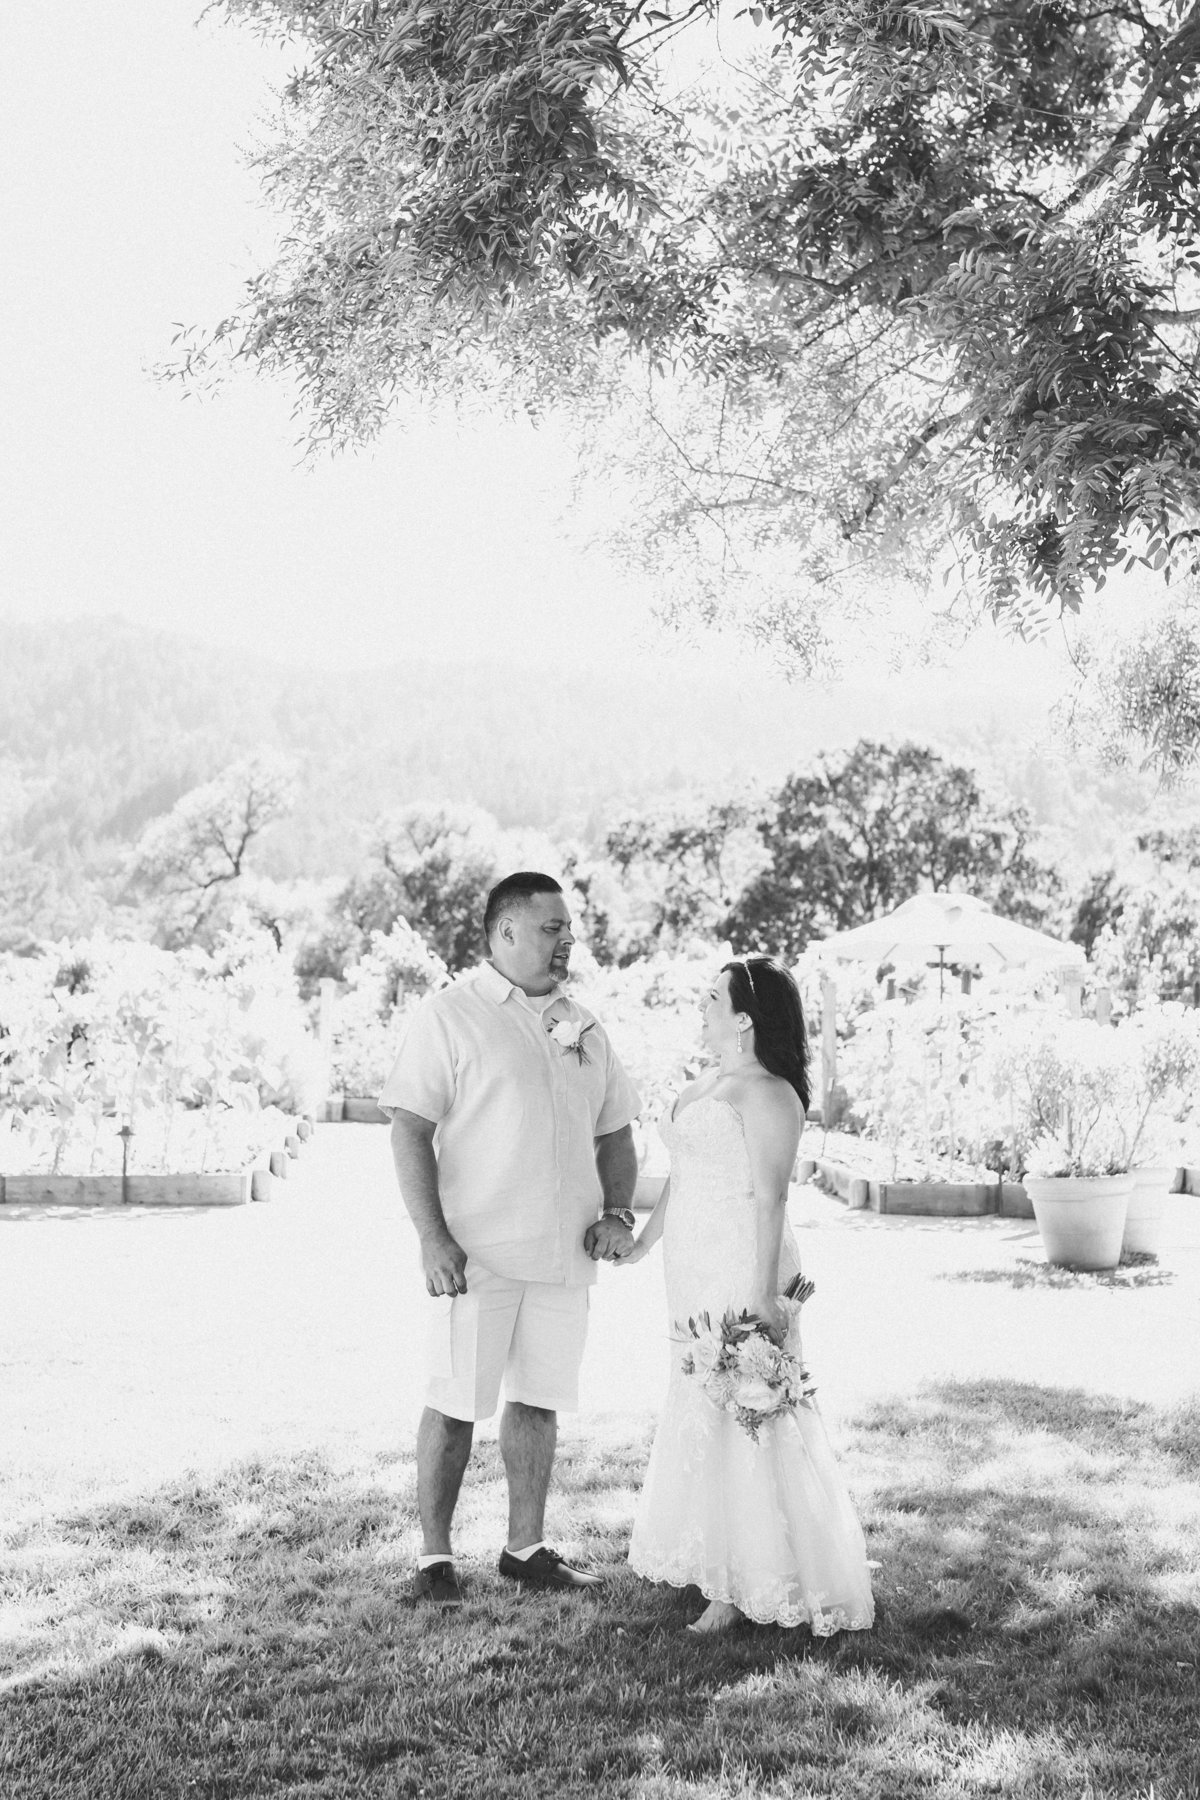 293-Evelyn+Peter-3167